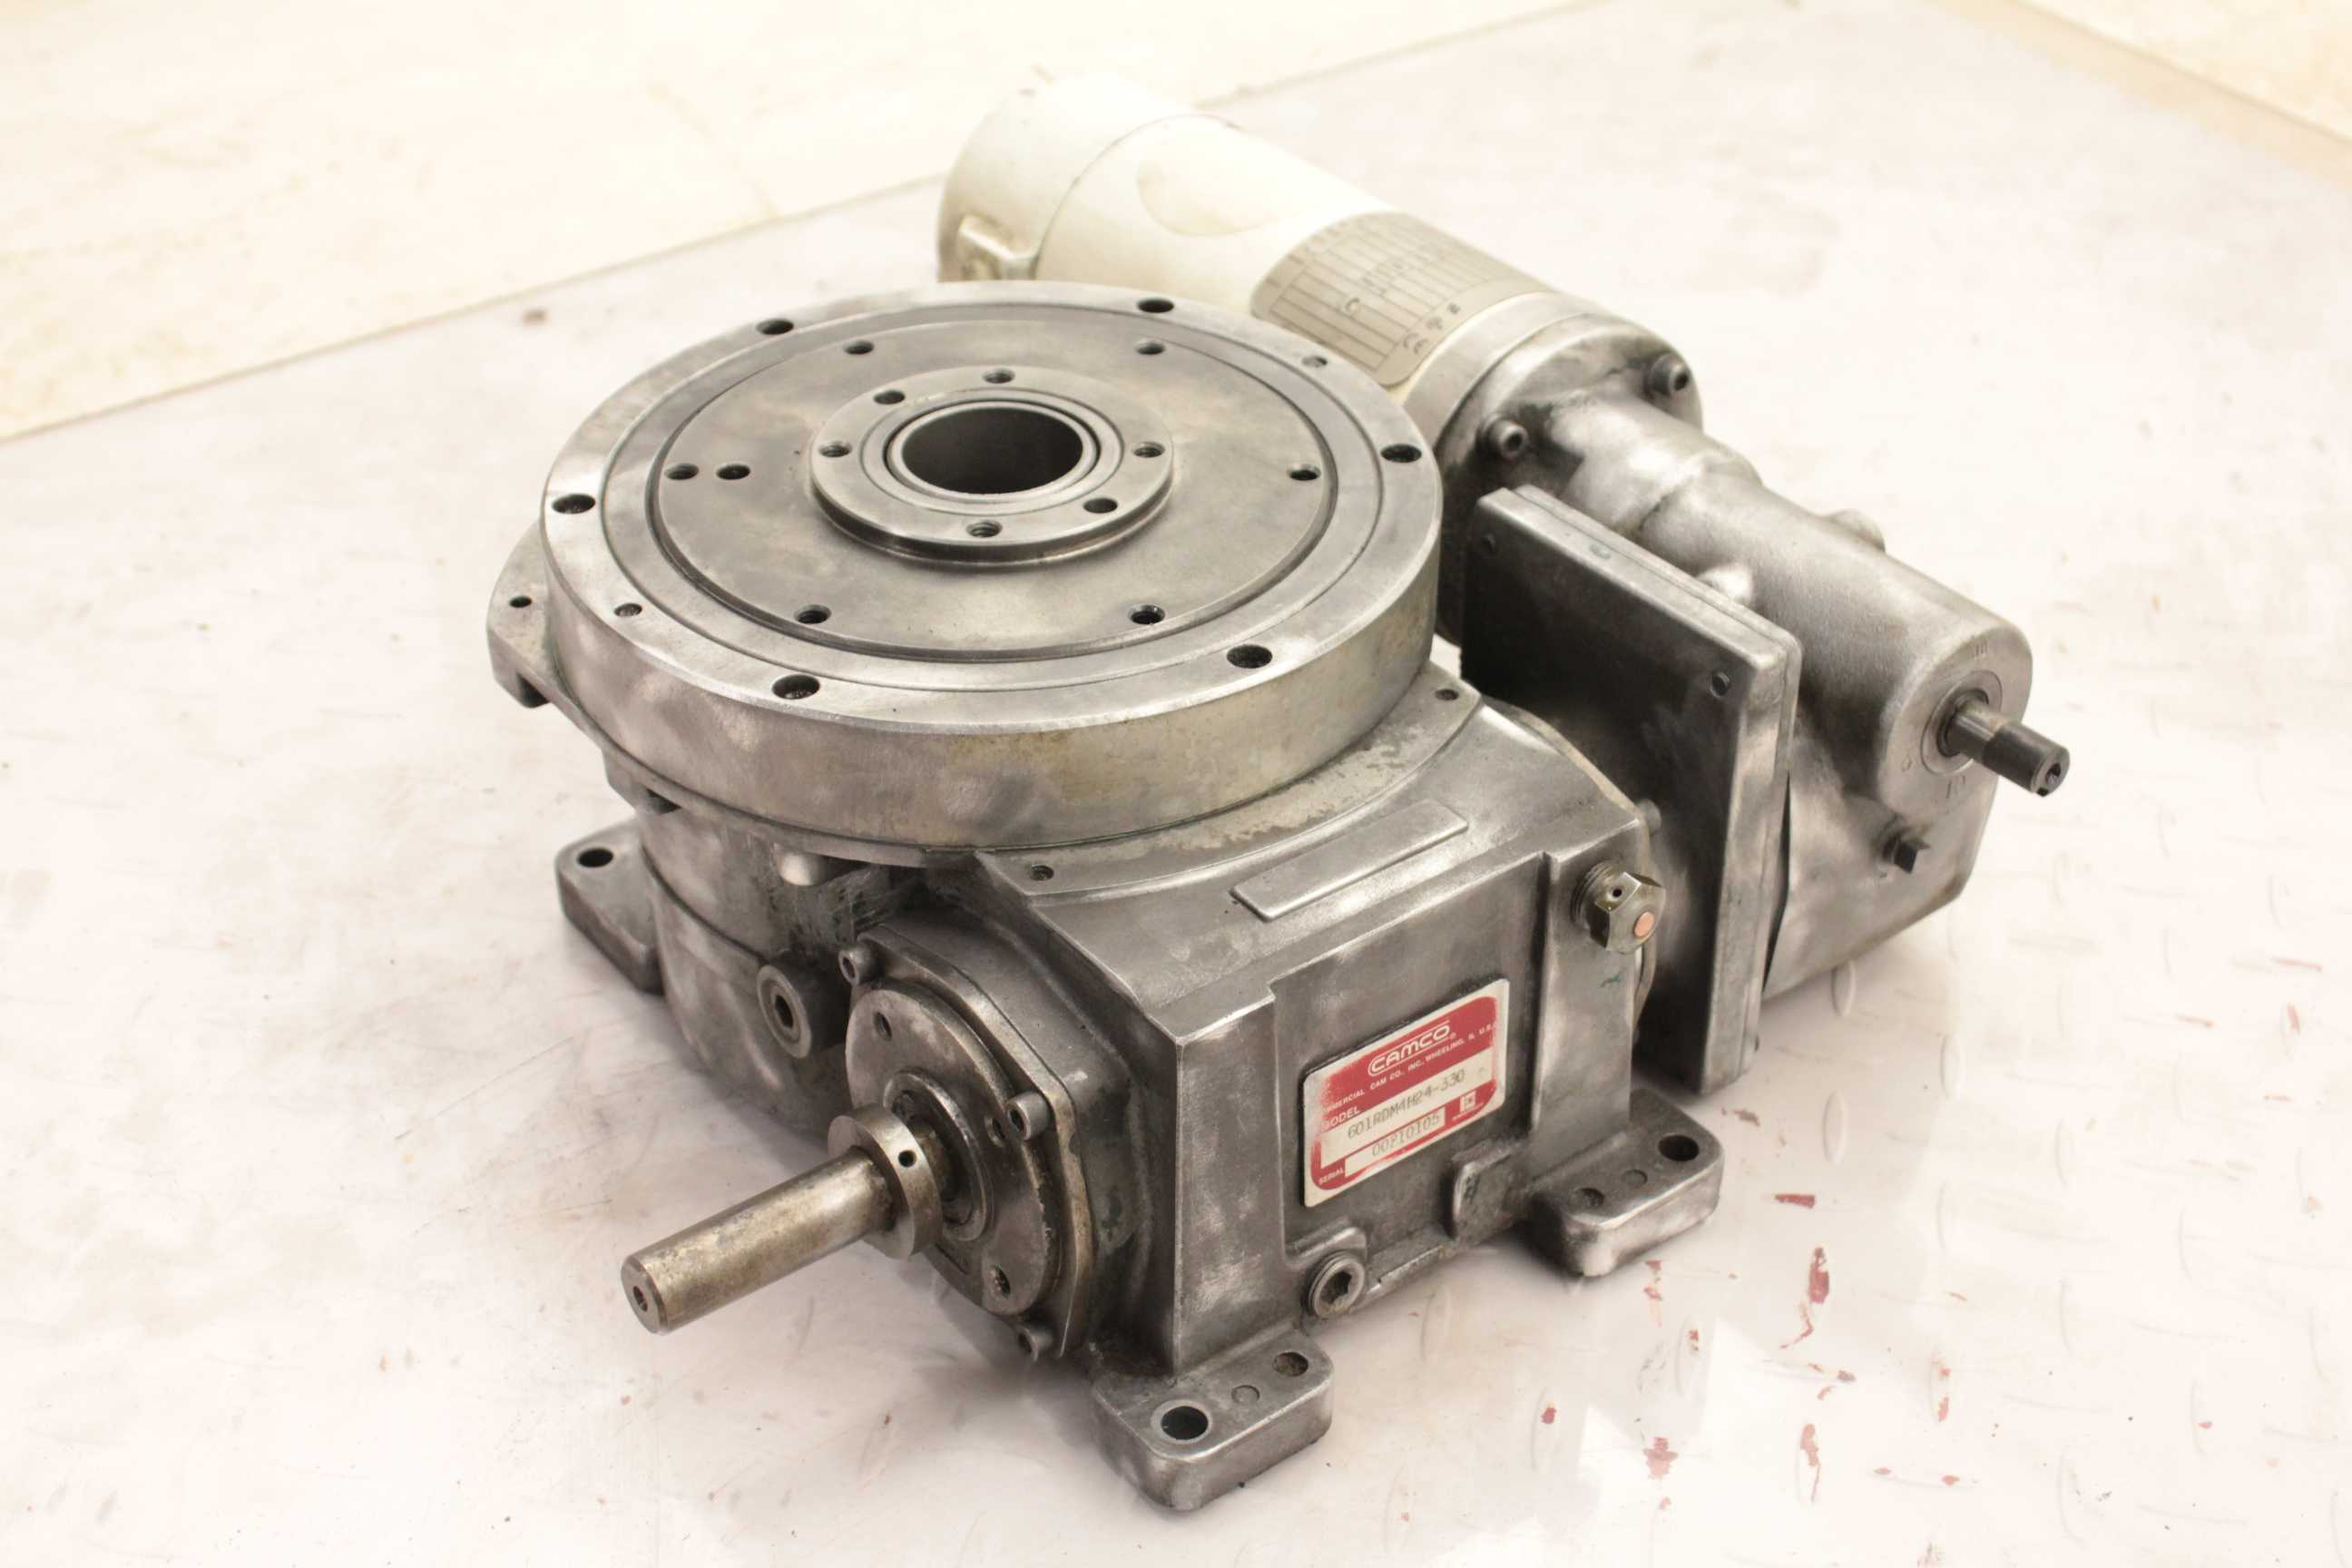 Camco 601rdm4h24 330 Rotary Indexer Drive Table Baldor 90v